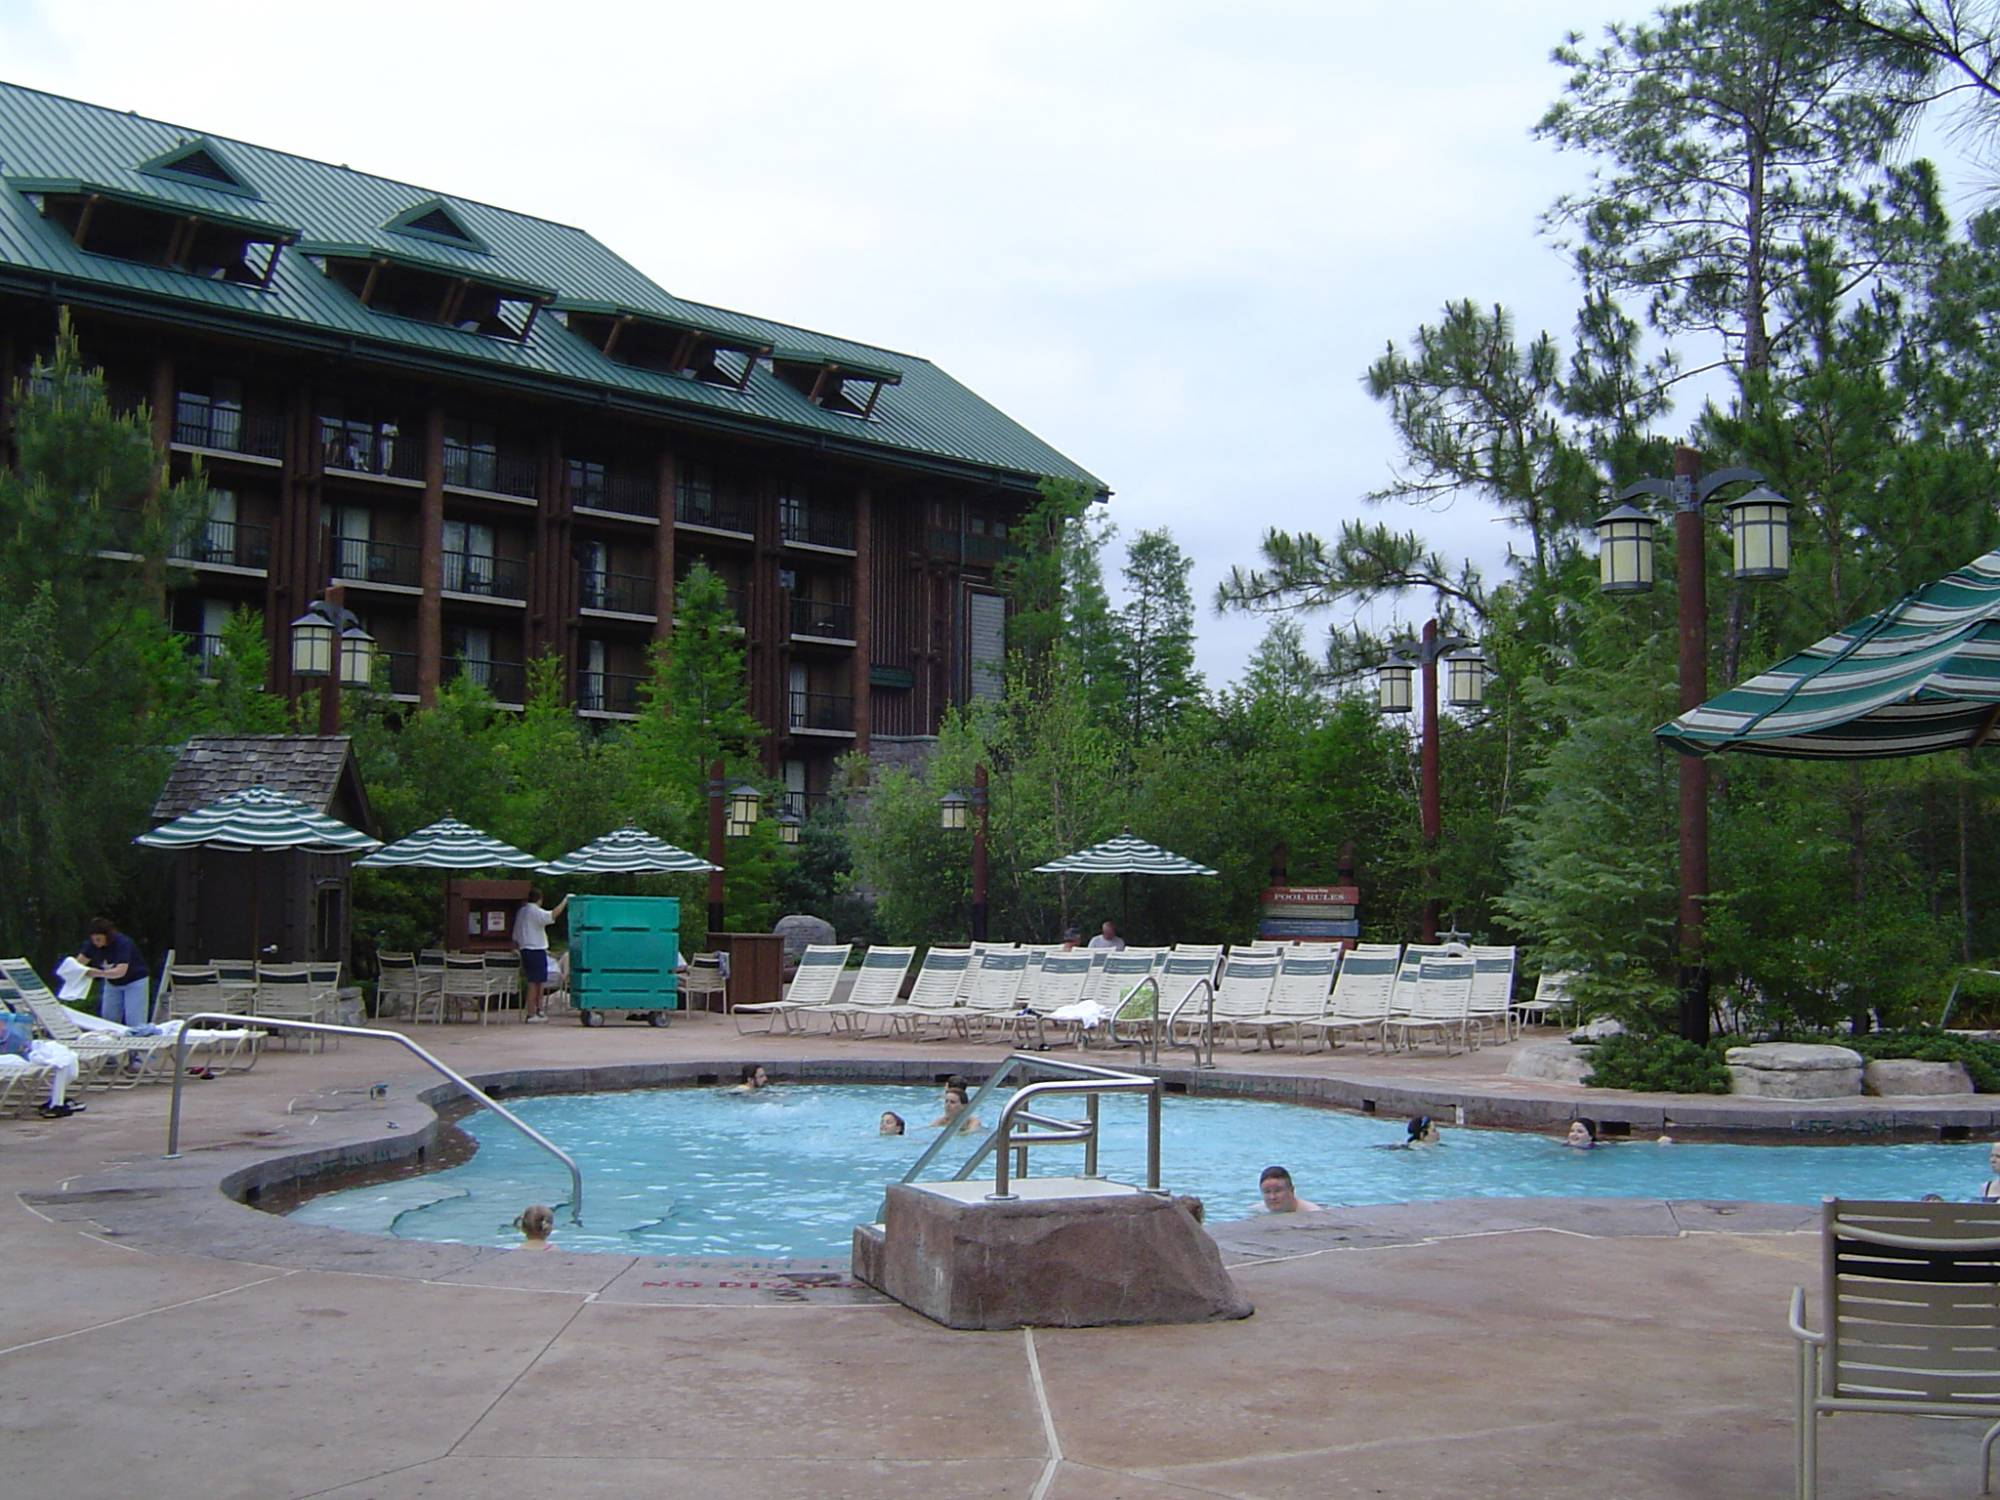 Random - Wilderness Lodge - DiningWilderness Lodge Pool Slide